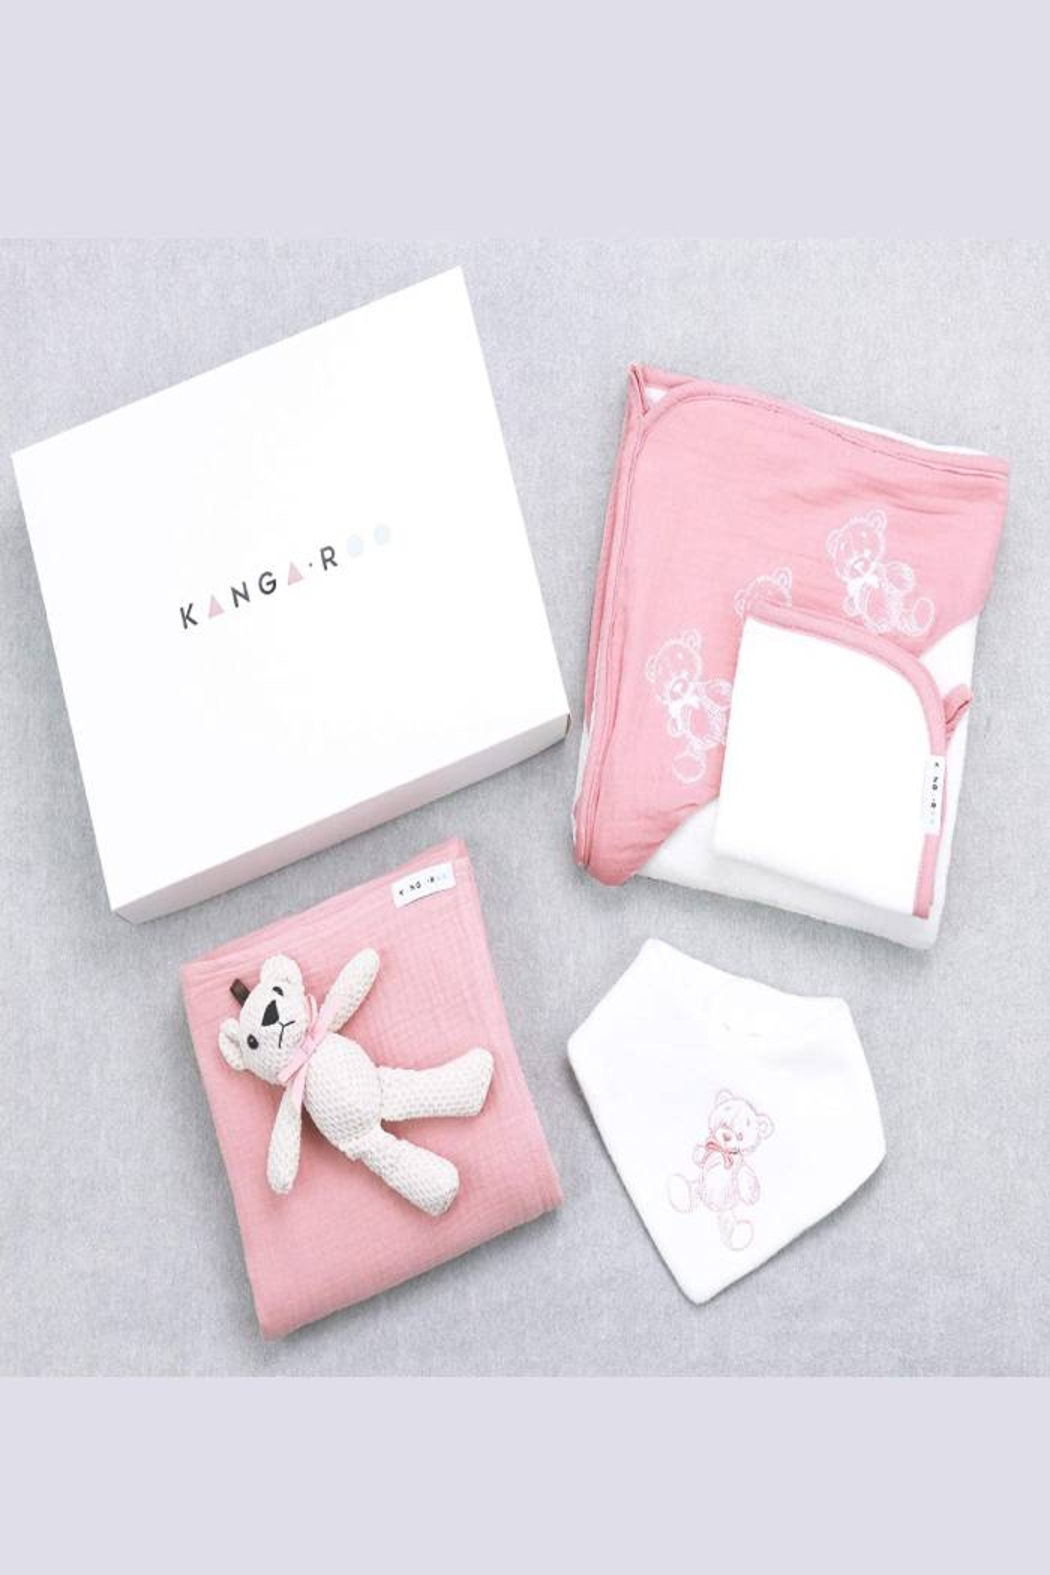 Kanga+Roo Newborn Baby Gift Basket Set - Shower Gifting for Girls. 5 Piece Set. Large Hooded Baby Towel, Washcloth, Cotton Swaddle and Teddy Bear. - Side Cropped Image